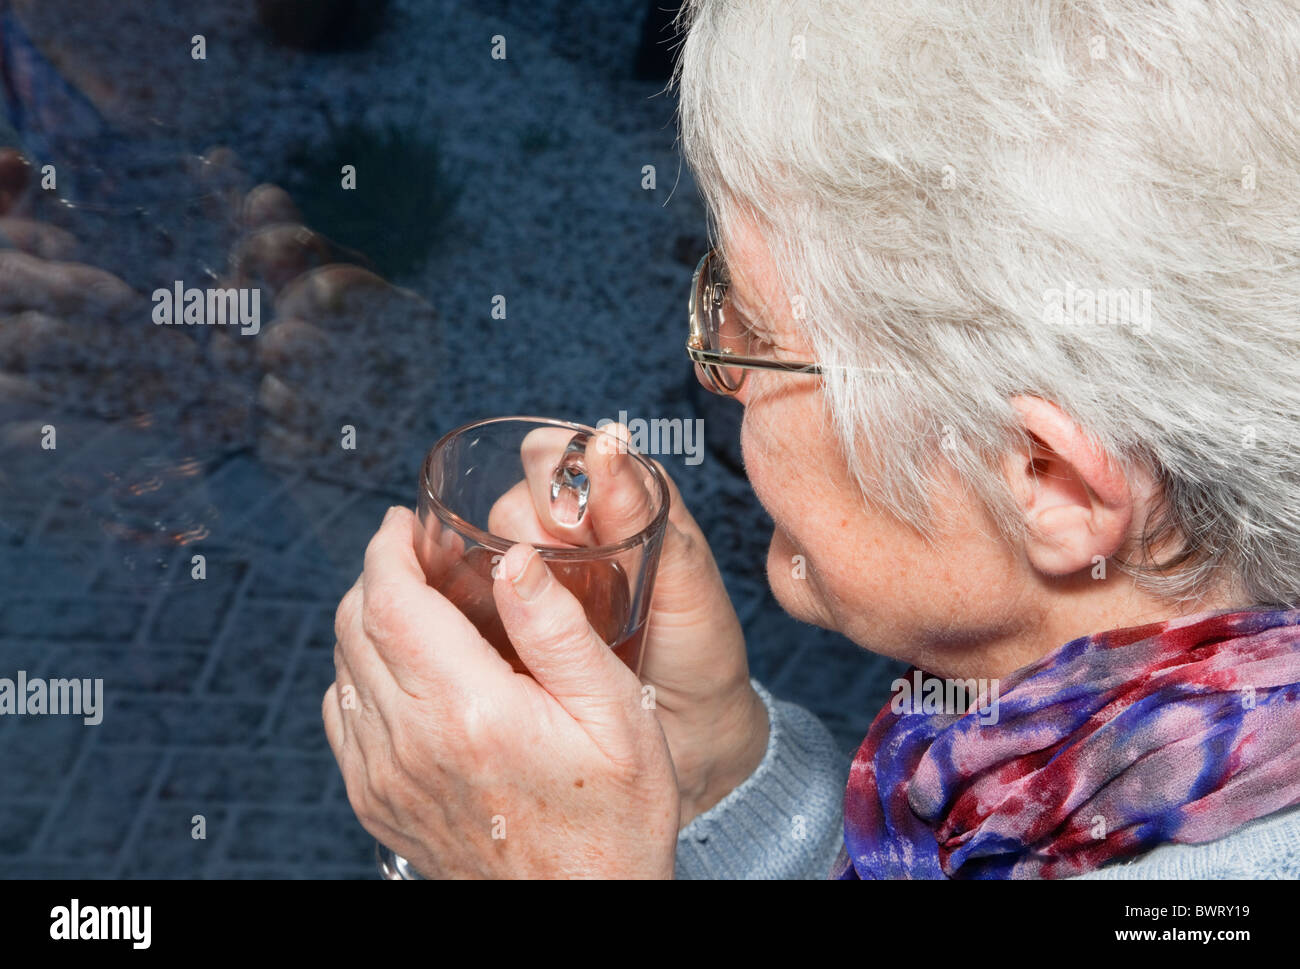 Pensive senior woman holding a warm drink looking out through a window on a cold dark night with snow outside in - Stock Image